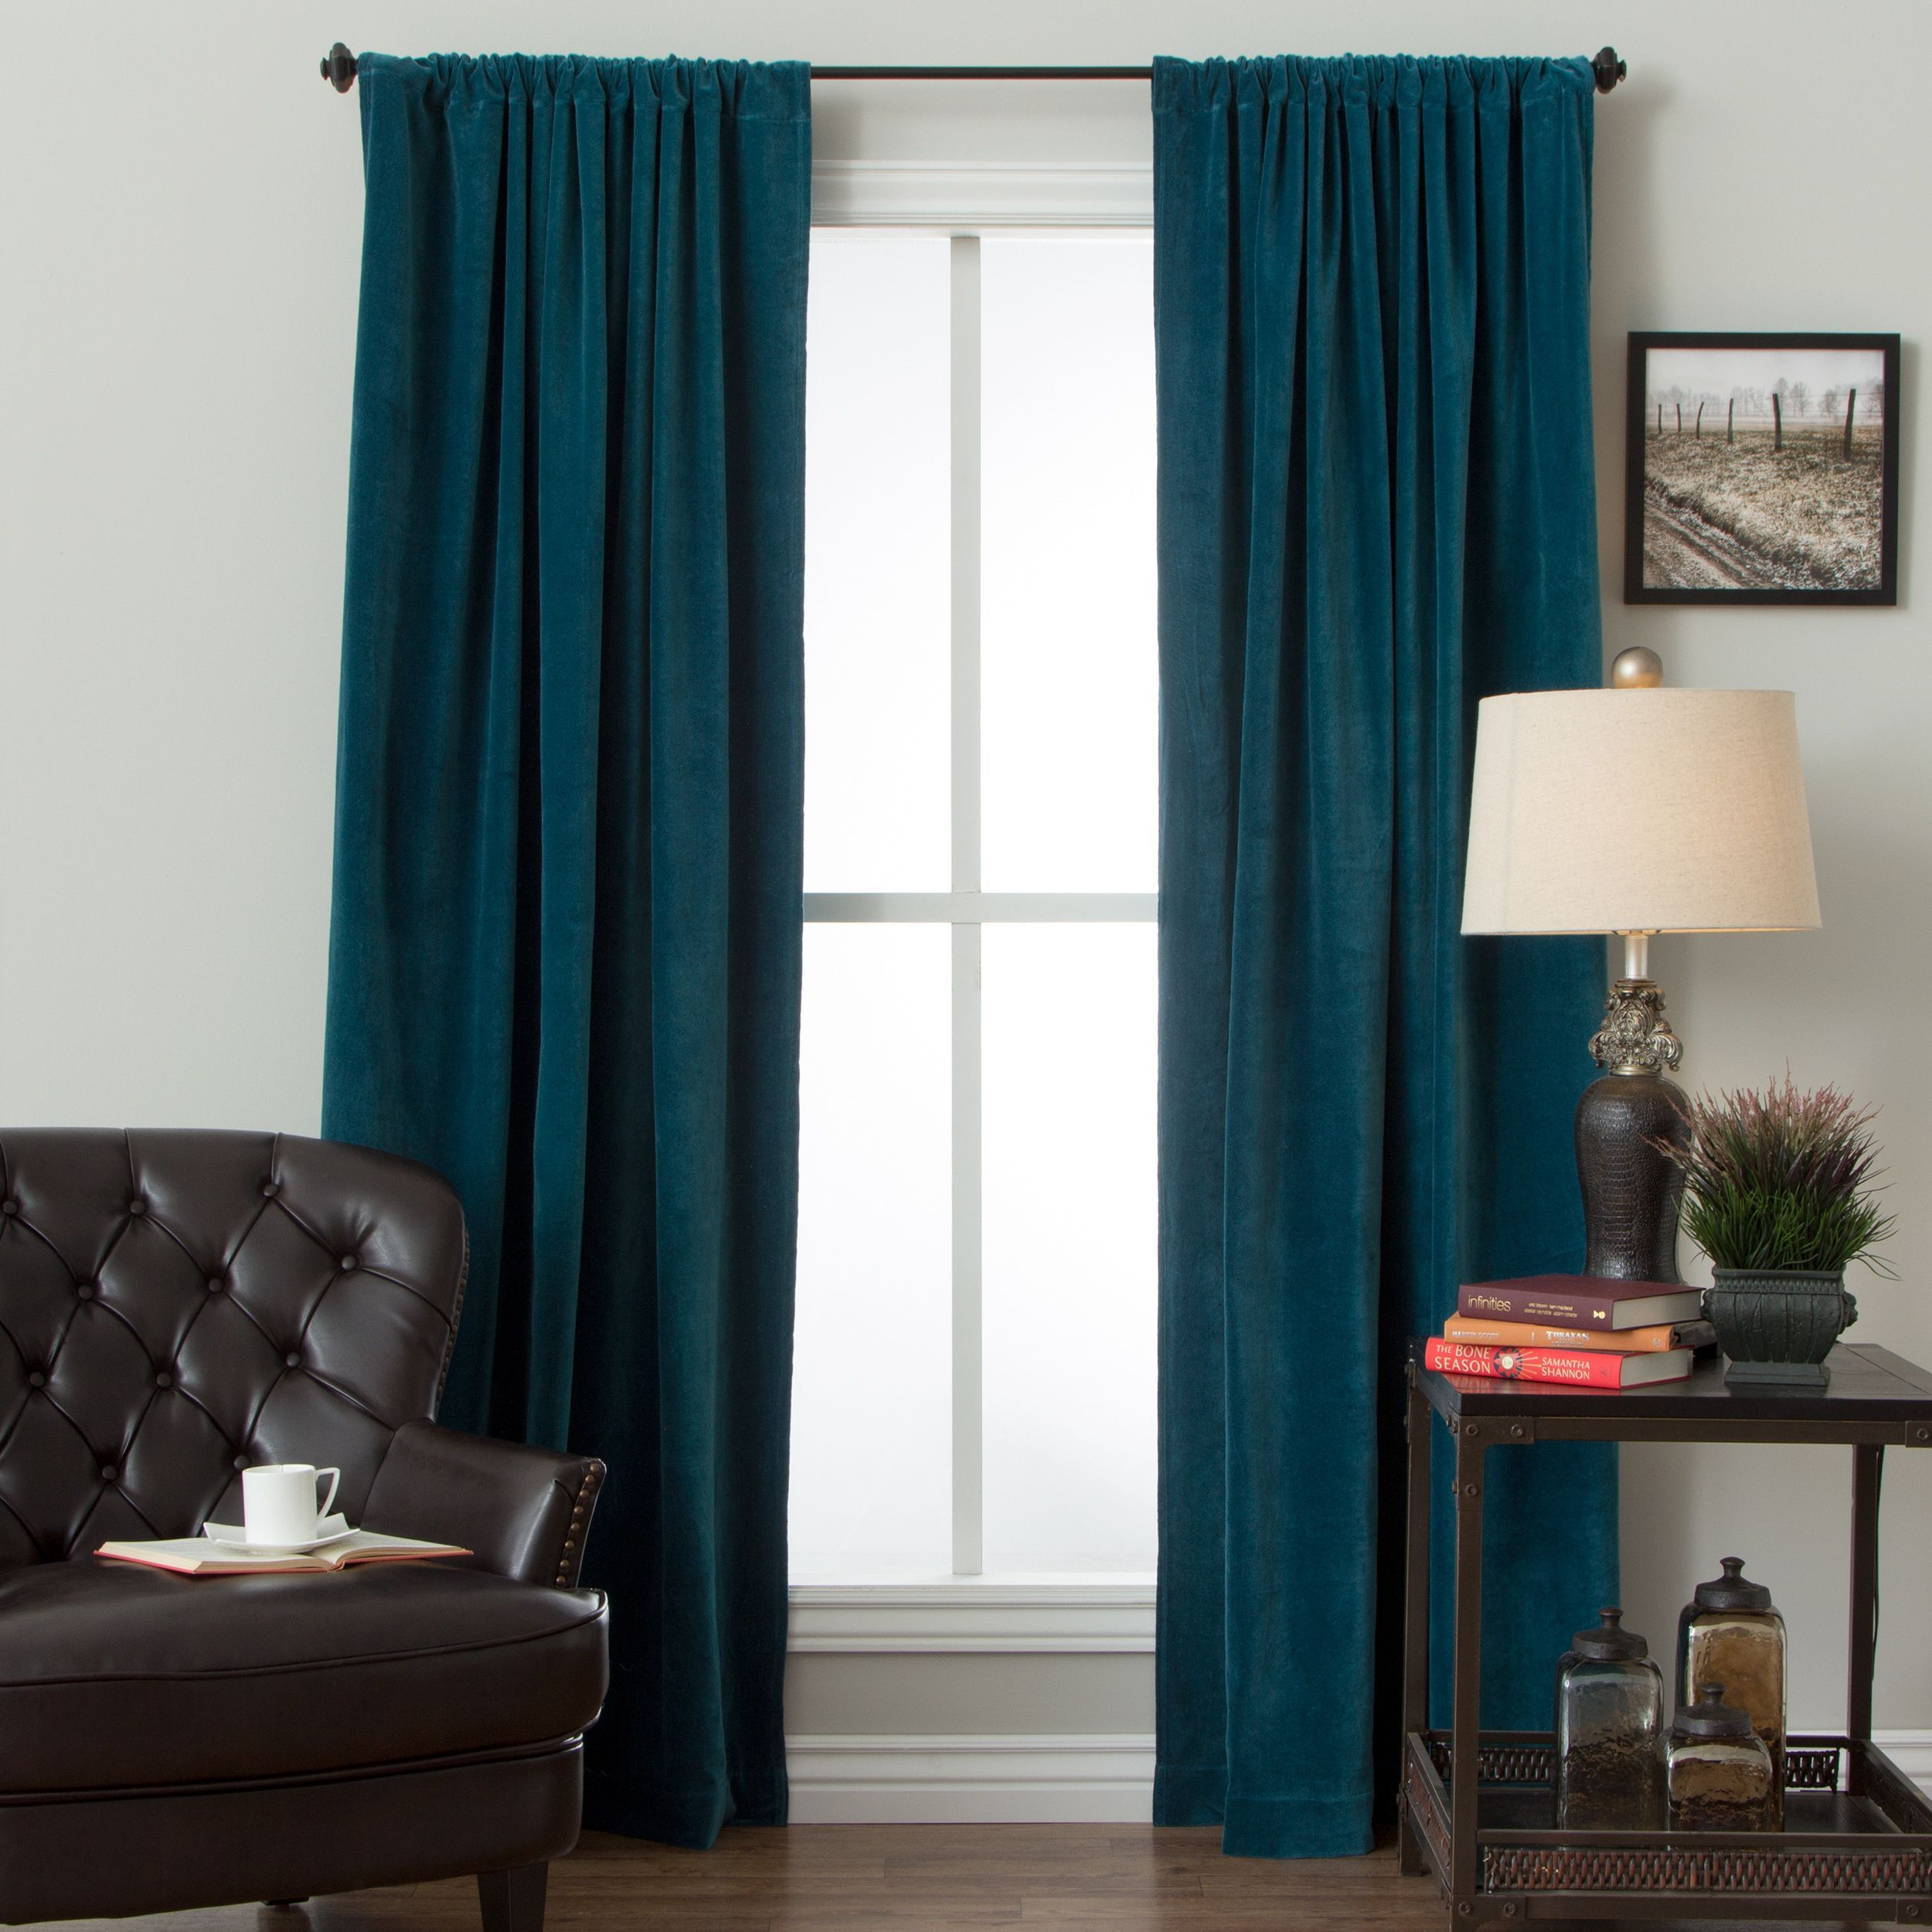 combine royal home set inches mayfair as for cover tempting bedding luxury panel curtains to pics inchestempting curtain decor amusing crushed apply velvet duvet panels with